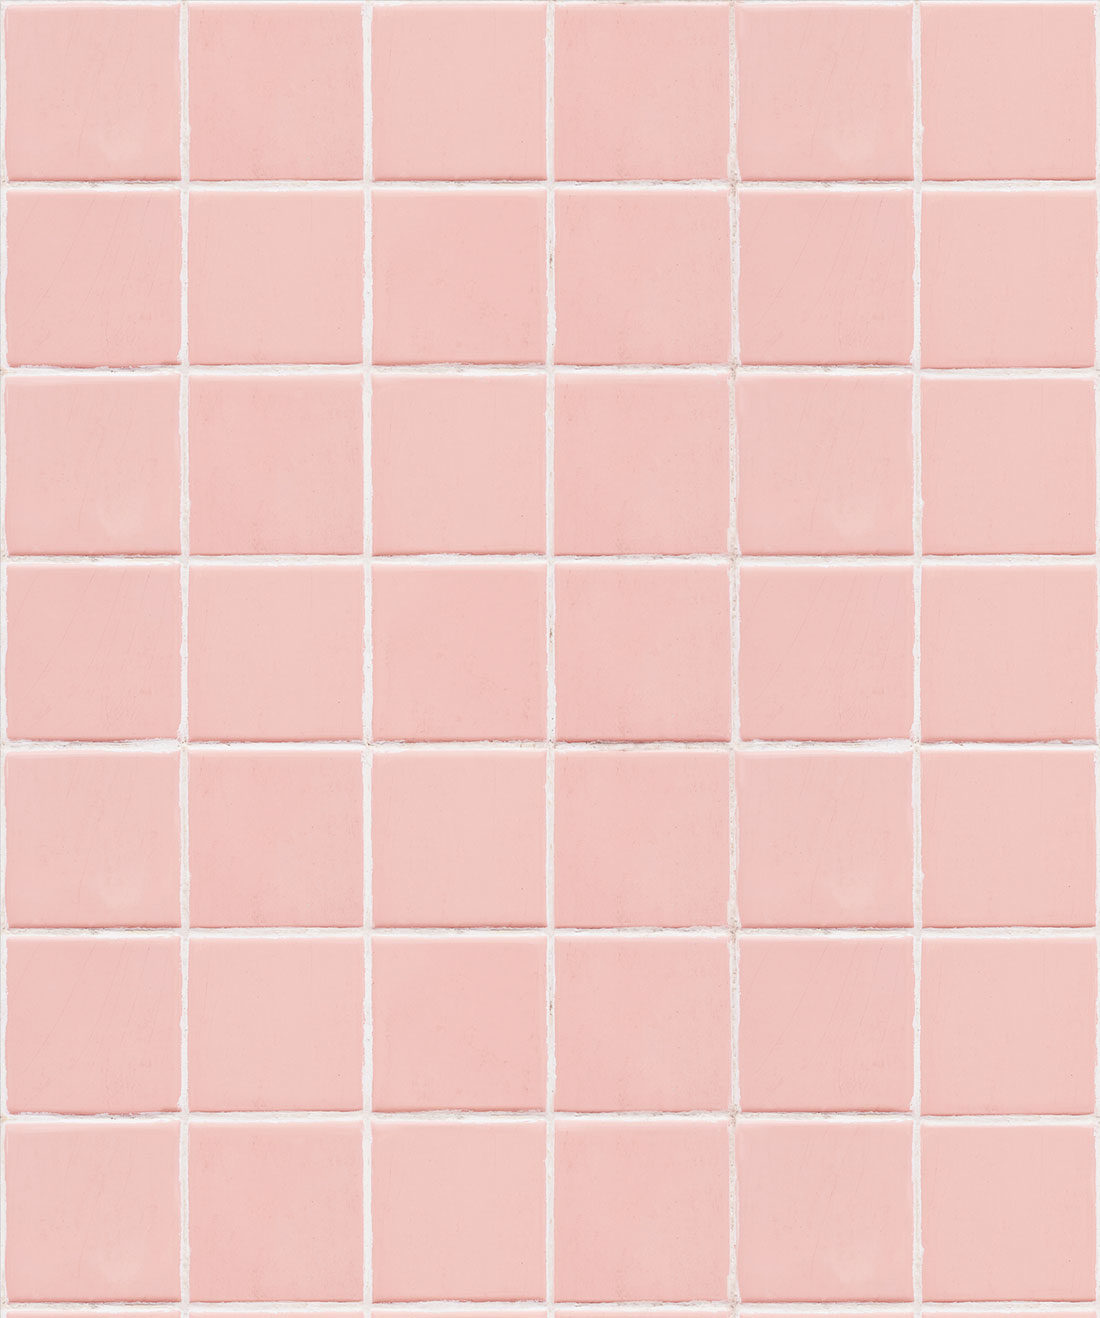 Free Download Pink Tiles Removable Wallpaper Realistic Tile